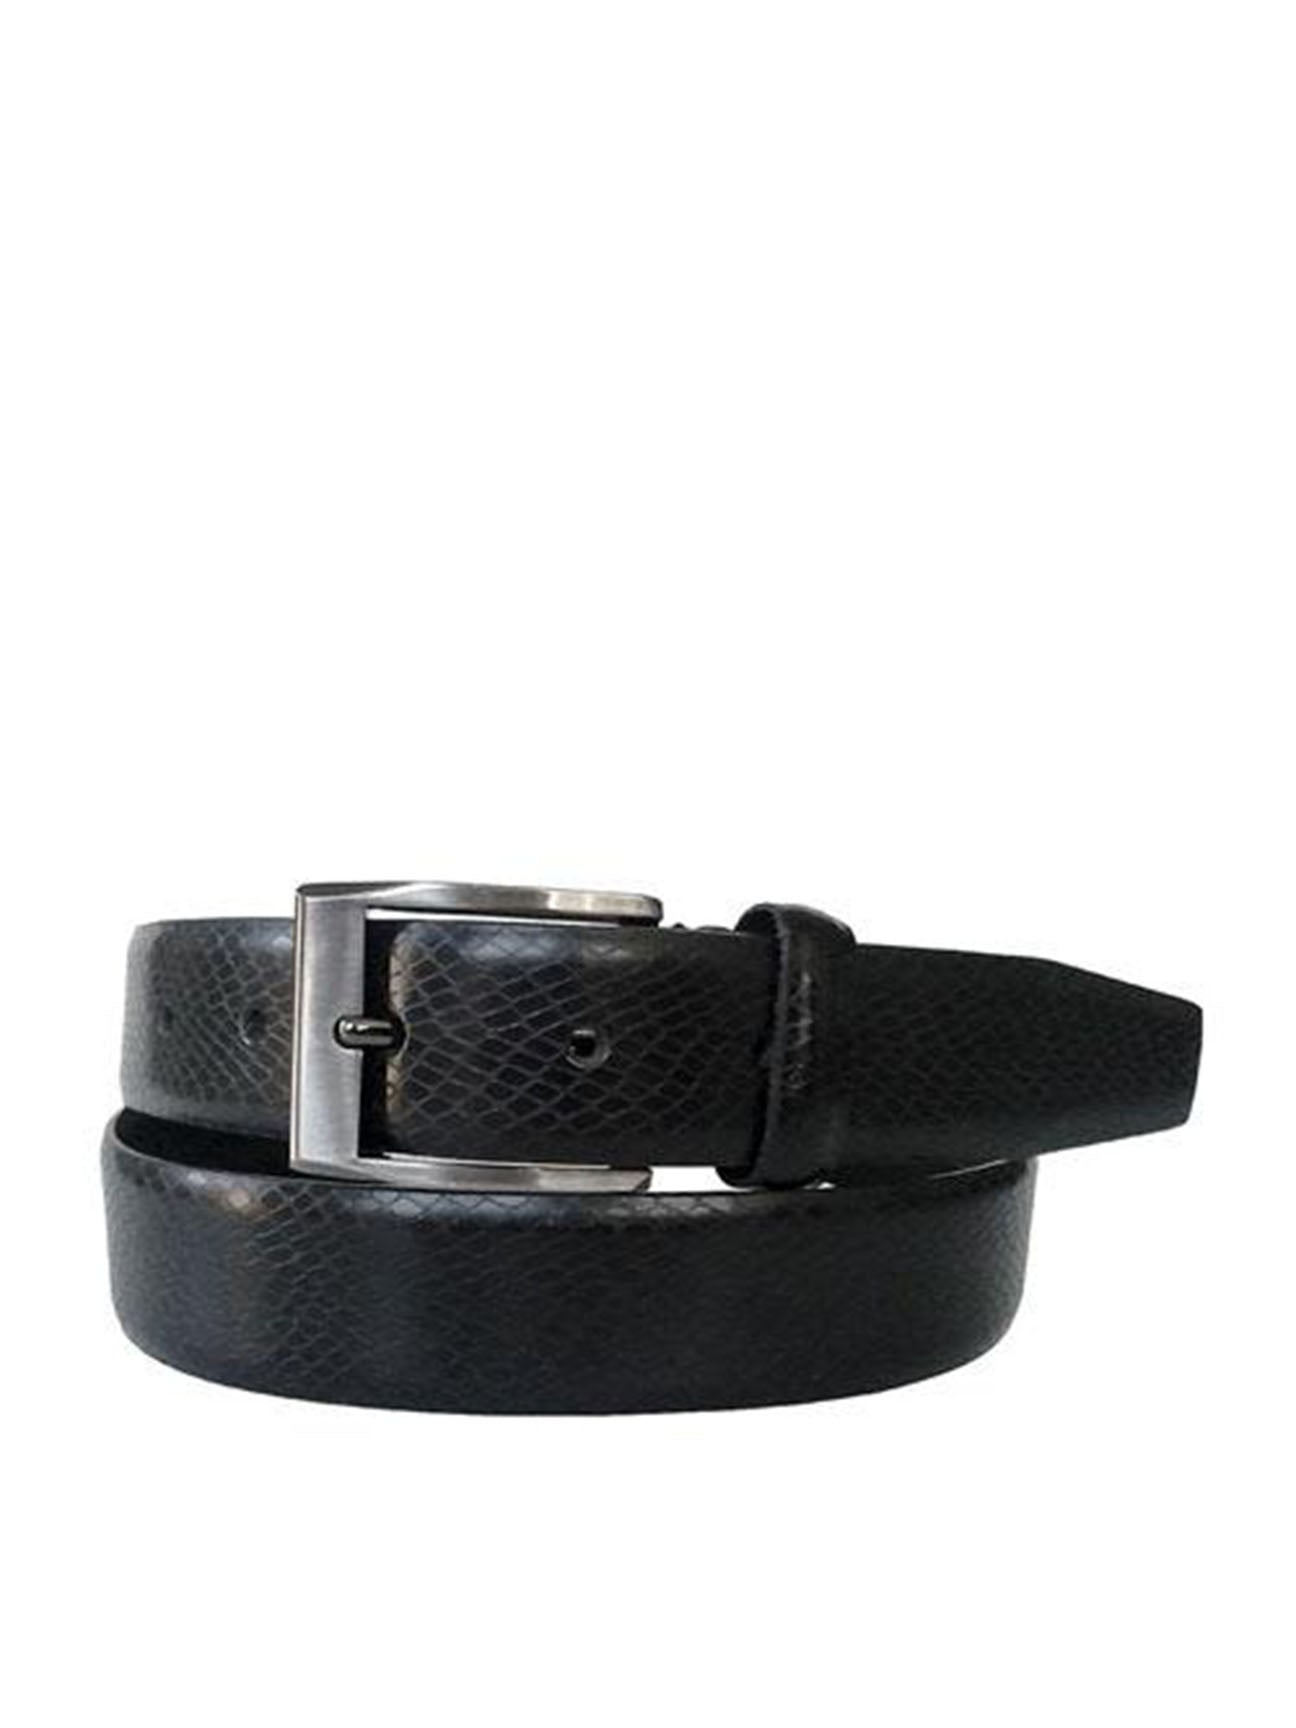 Gewgaw Real Leather Black Belt with Snake Skin Effect